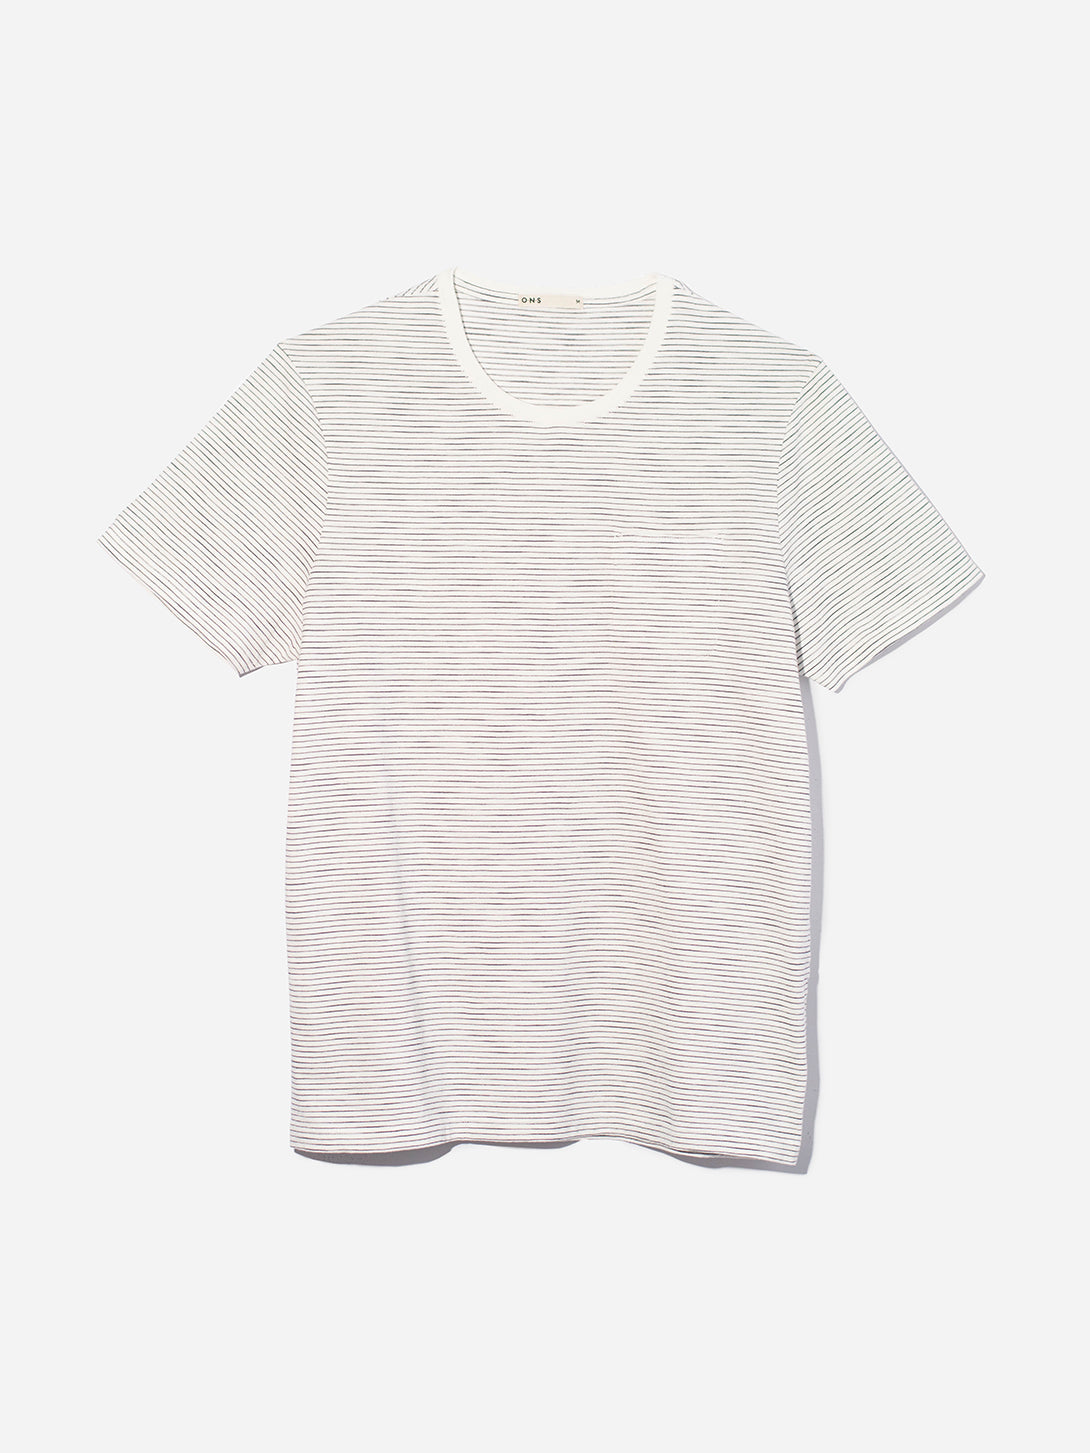 WHITE t shirts for men bowery stripe pocket tee ons clothing